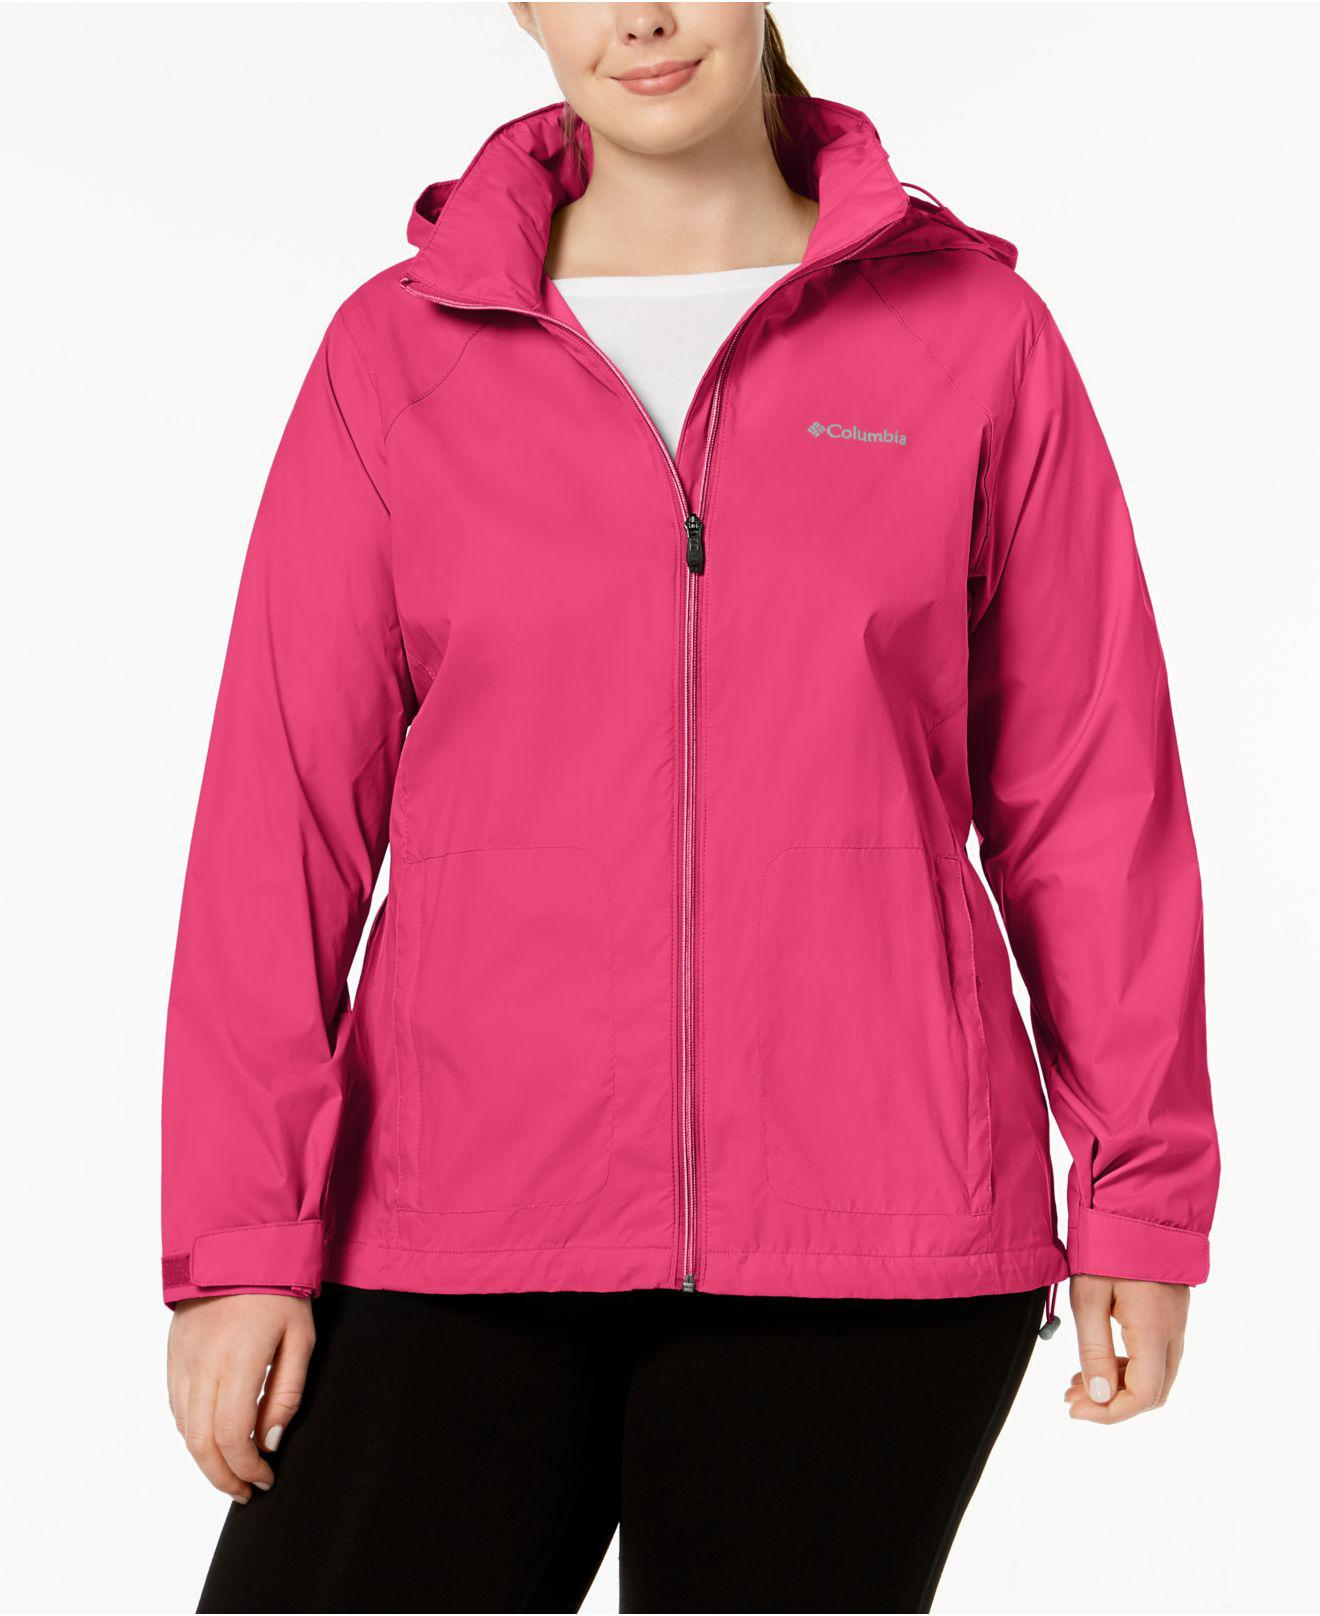 74e71ed1b6a Lyst - Columbia Plus Size Switchback Iii Jacket in Pink